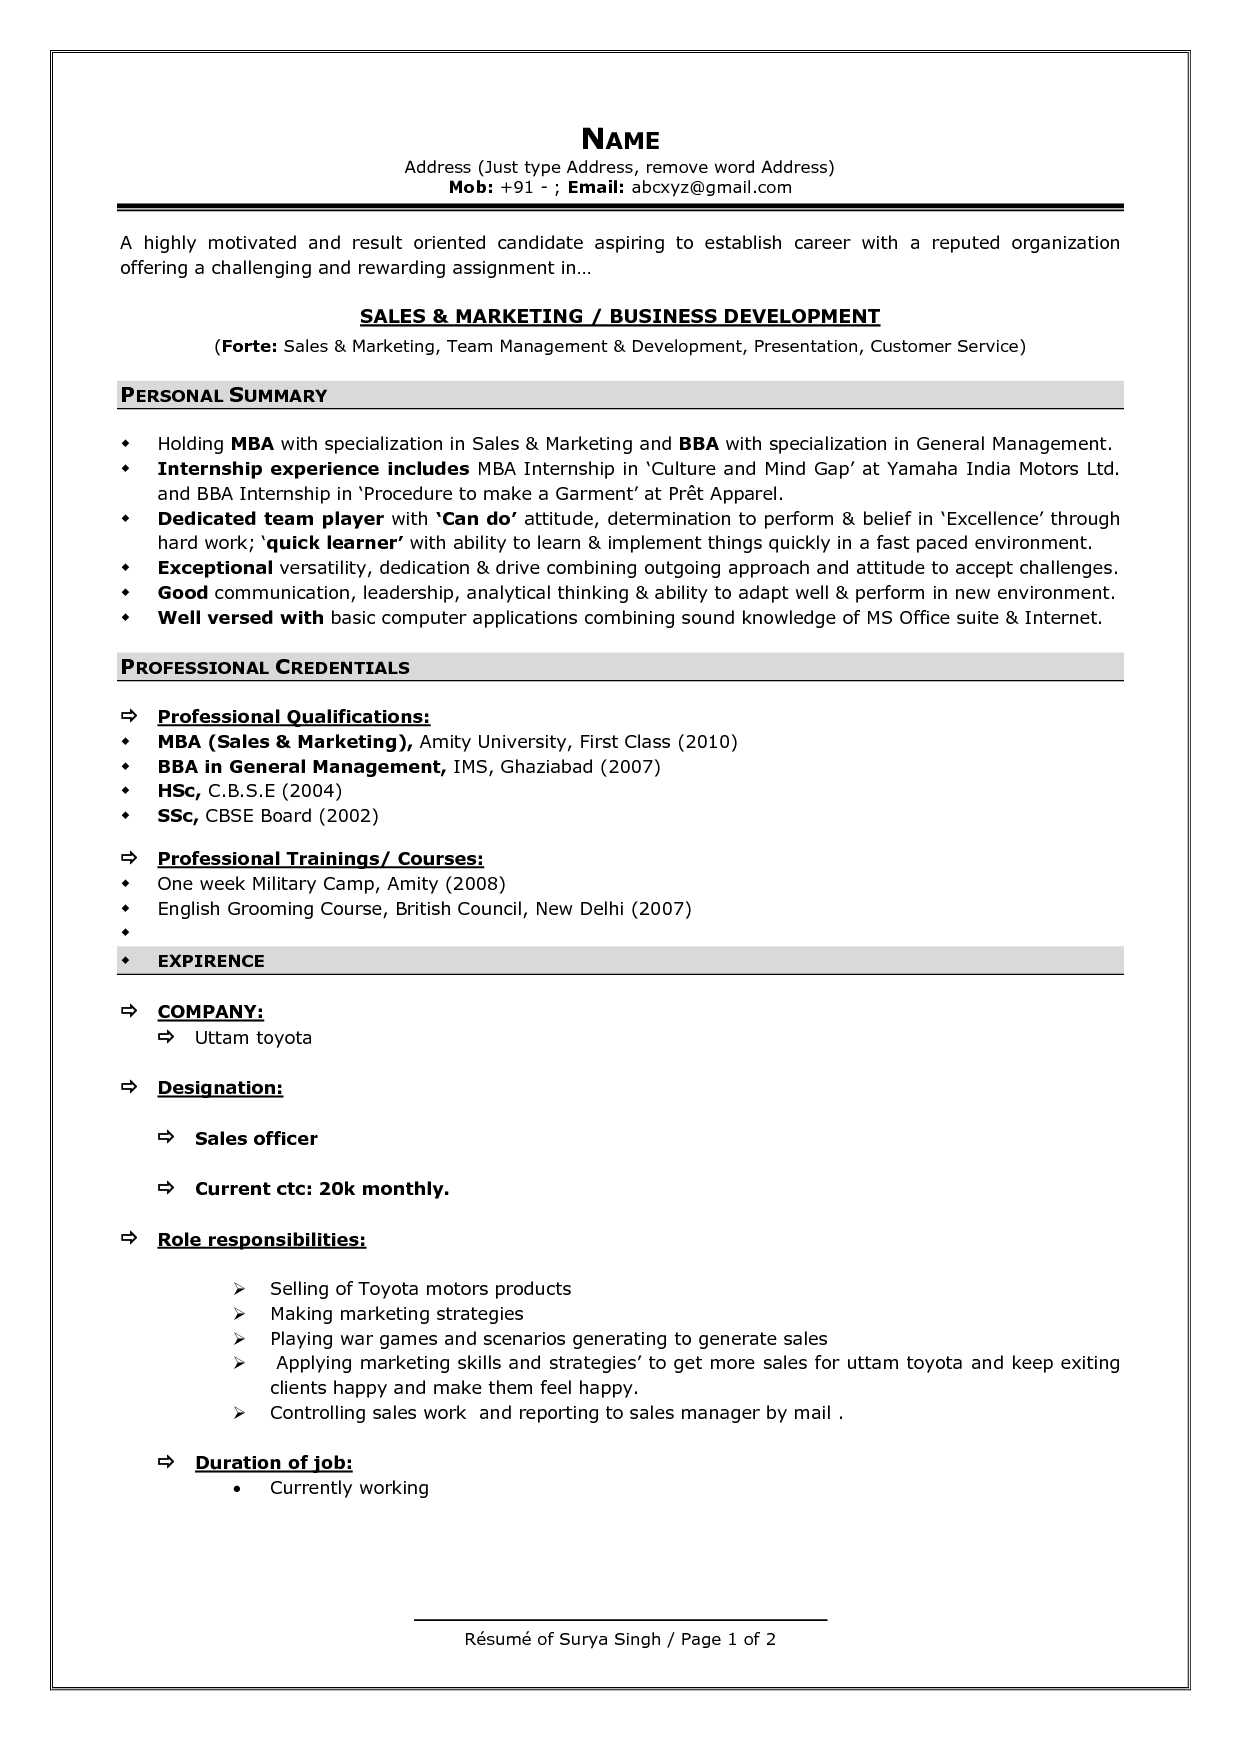 Filenet Resume San Diego Architecture And Technology Essay Banking